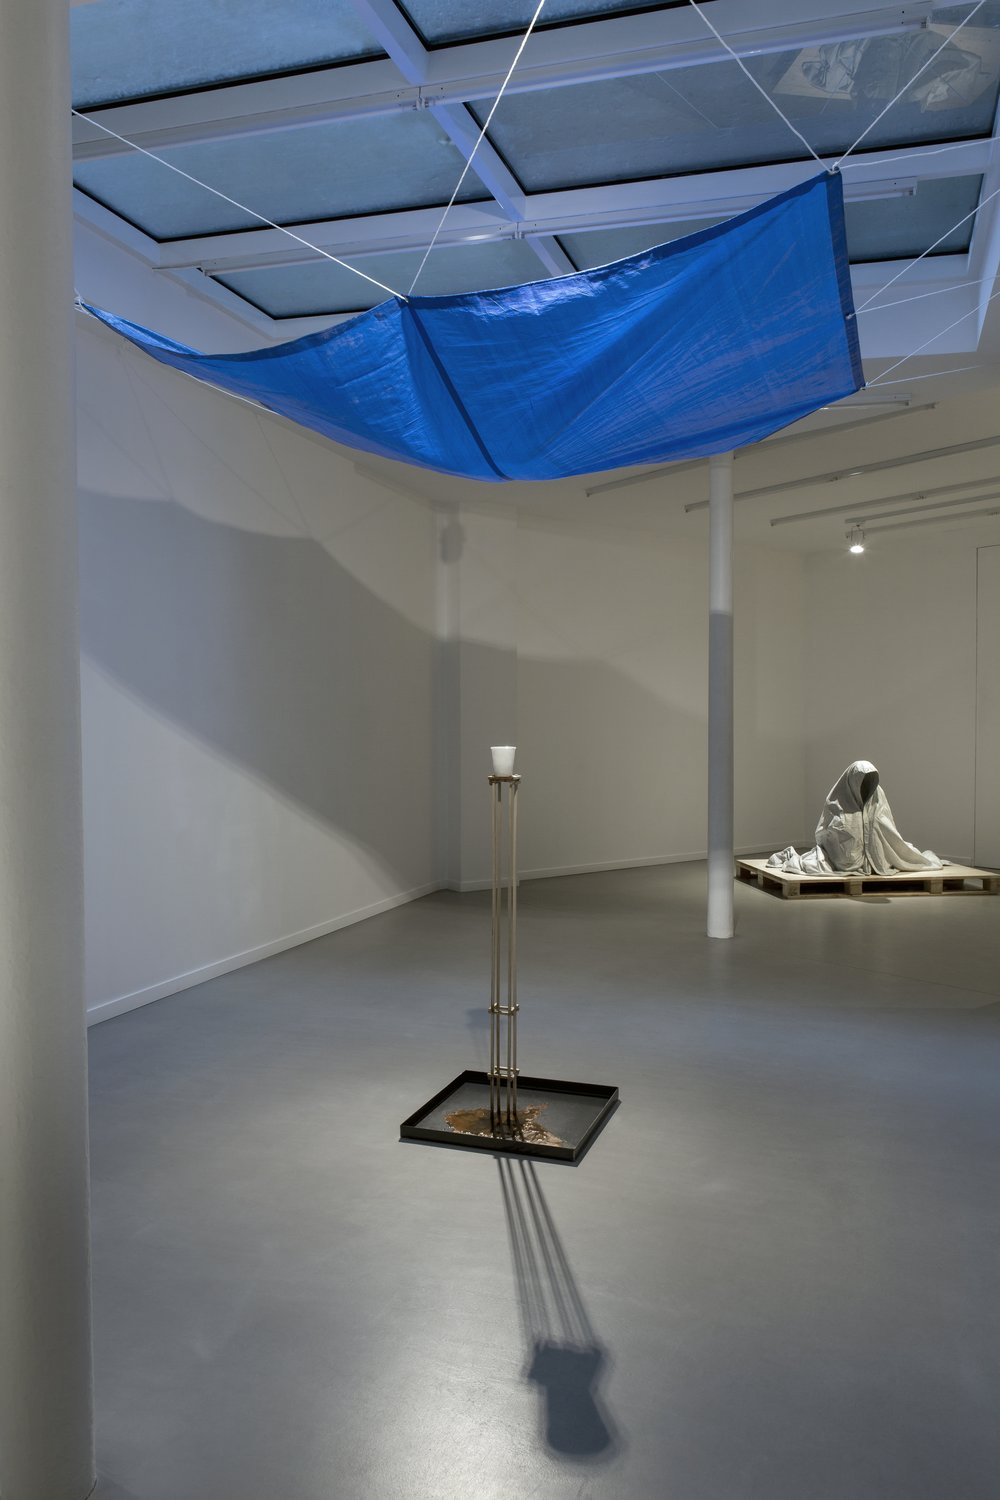 Deluge in a Cup   2015  Bianca Carrara, stainless steel tray, tarp, water, rope, Tasmanian oak stand  Dimensions variable (foreground)